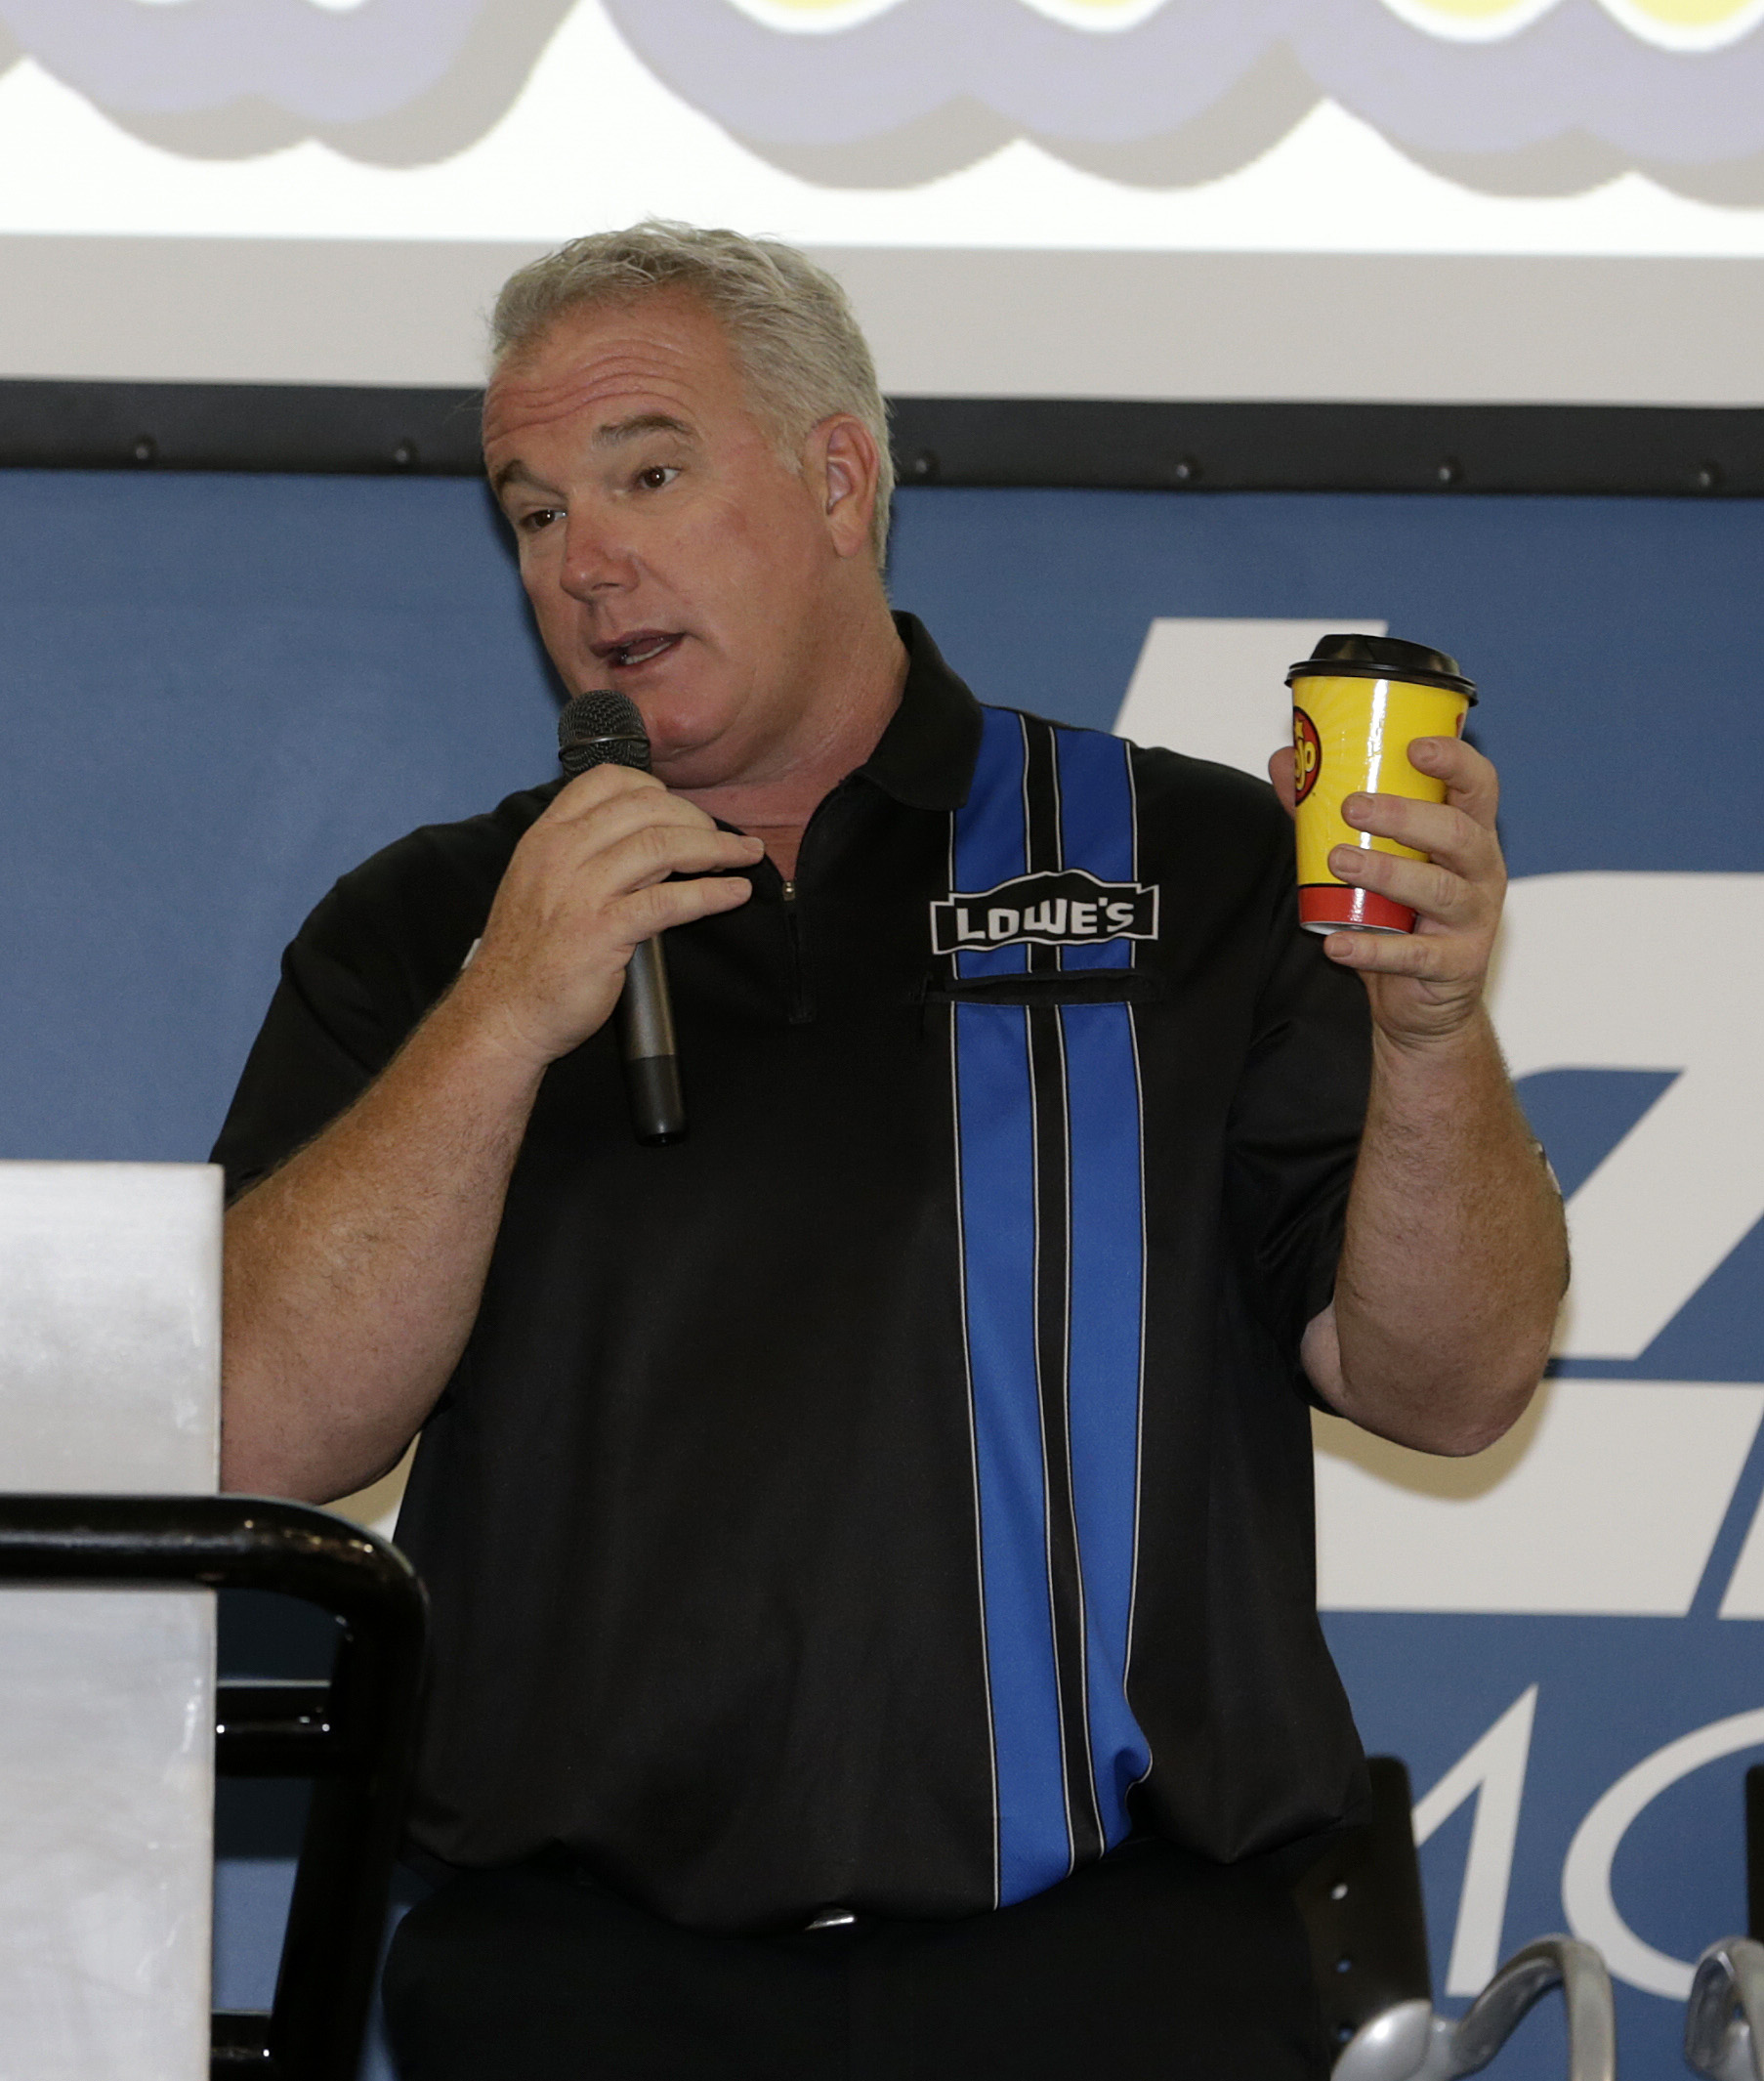 Jimmie's spotter Earl Barban made a surprise appearance, to the delight of all of the fans! (Charlotte, 2012)